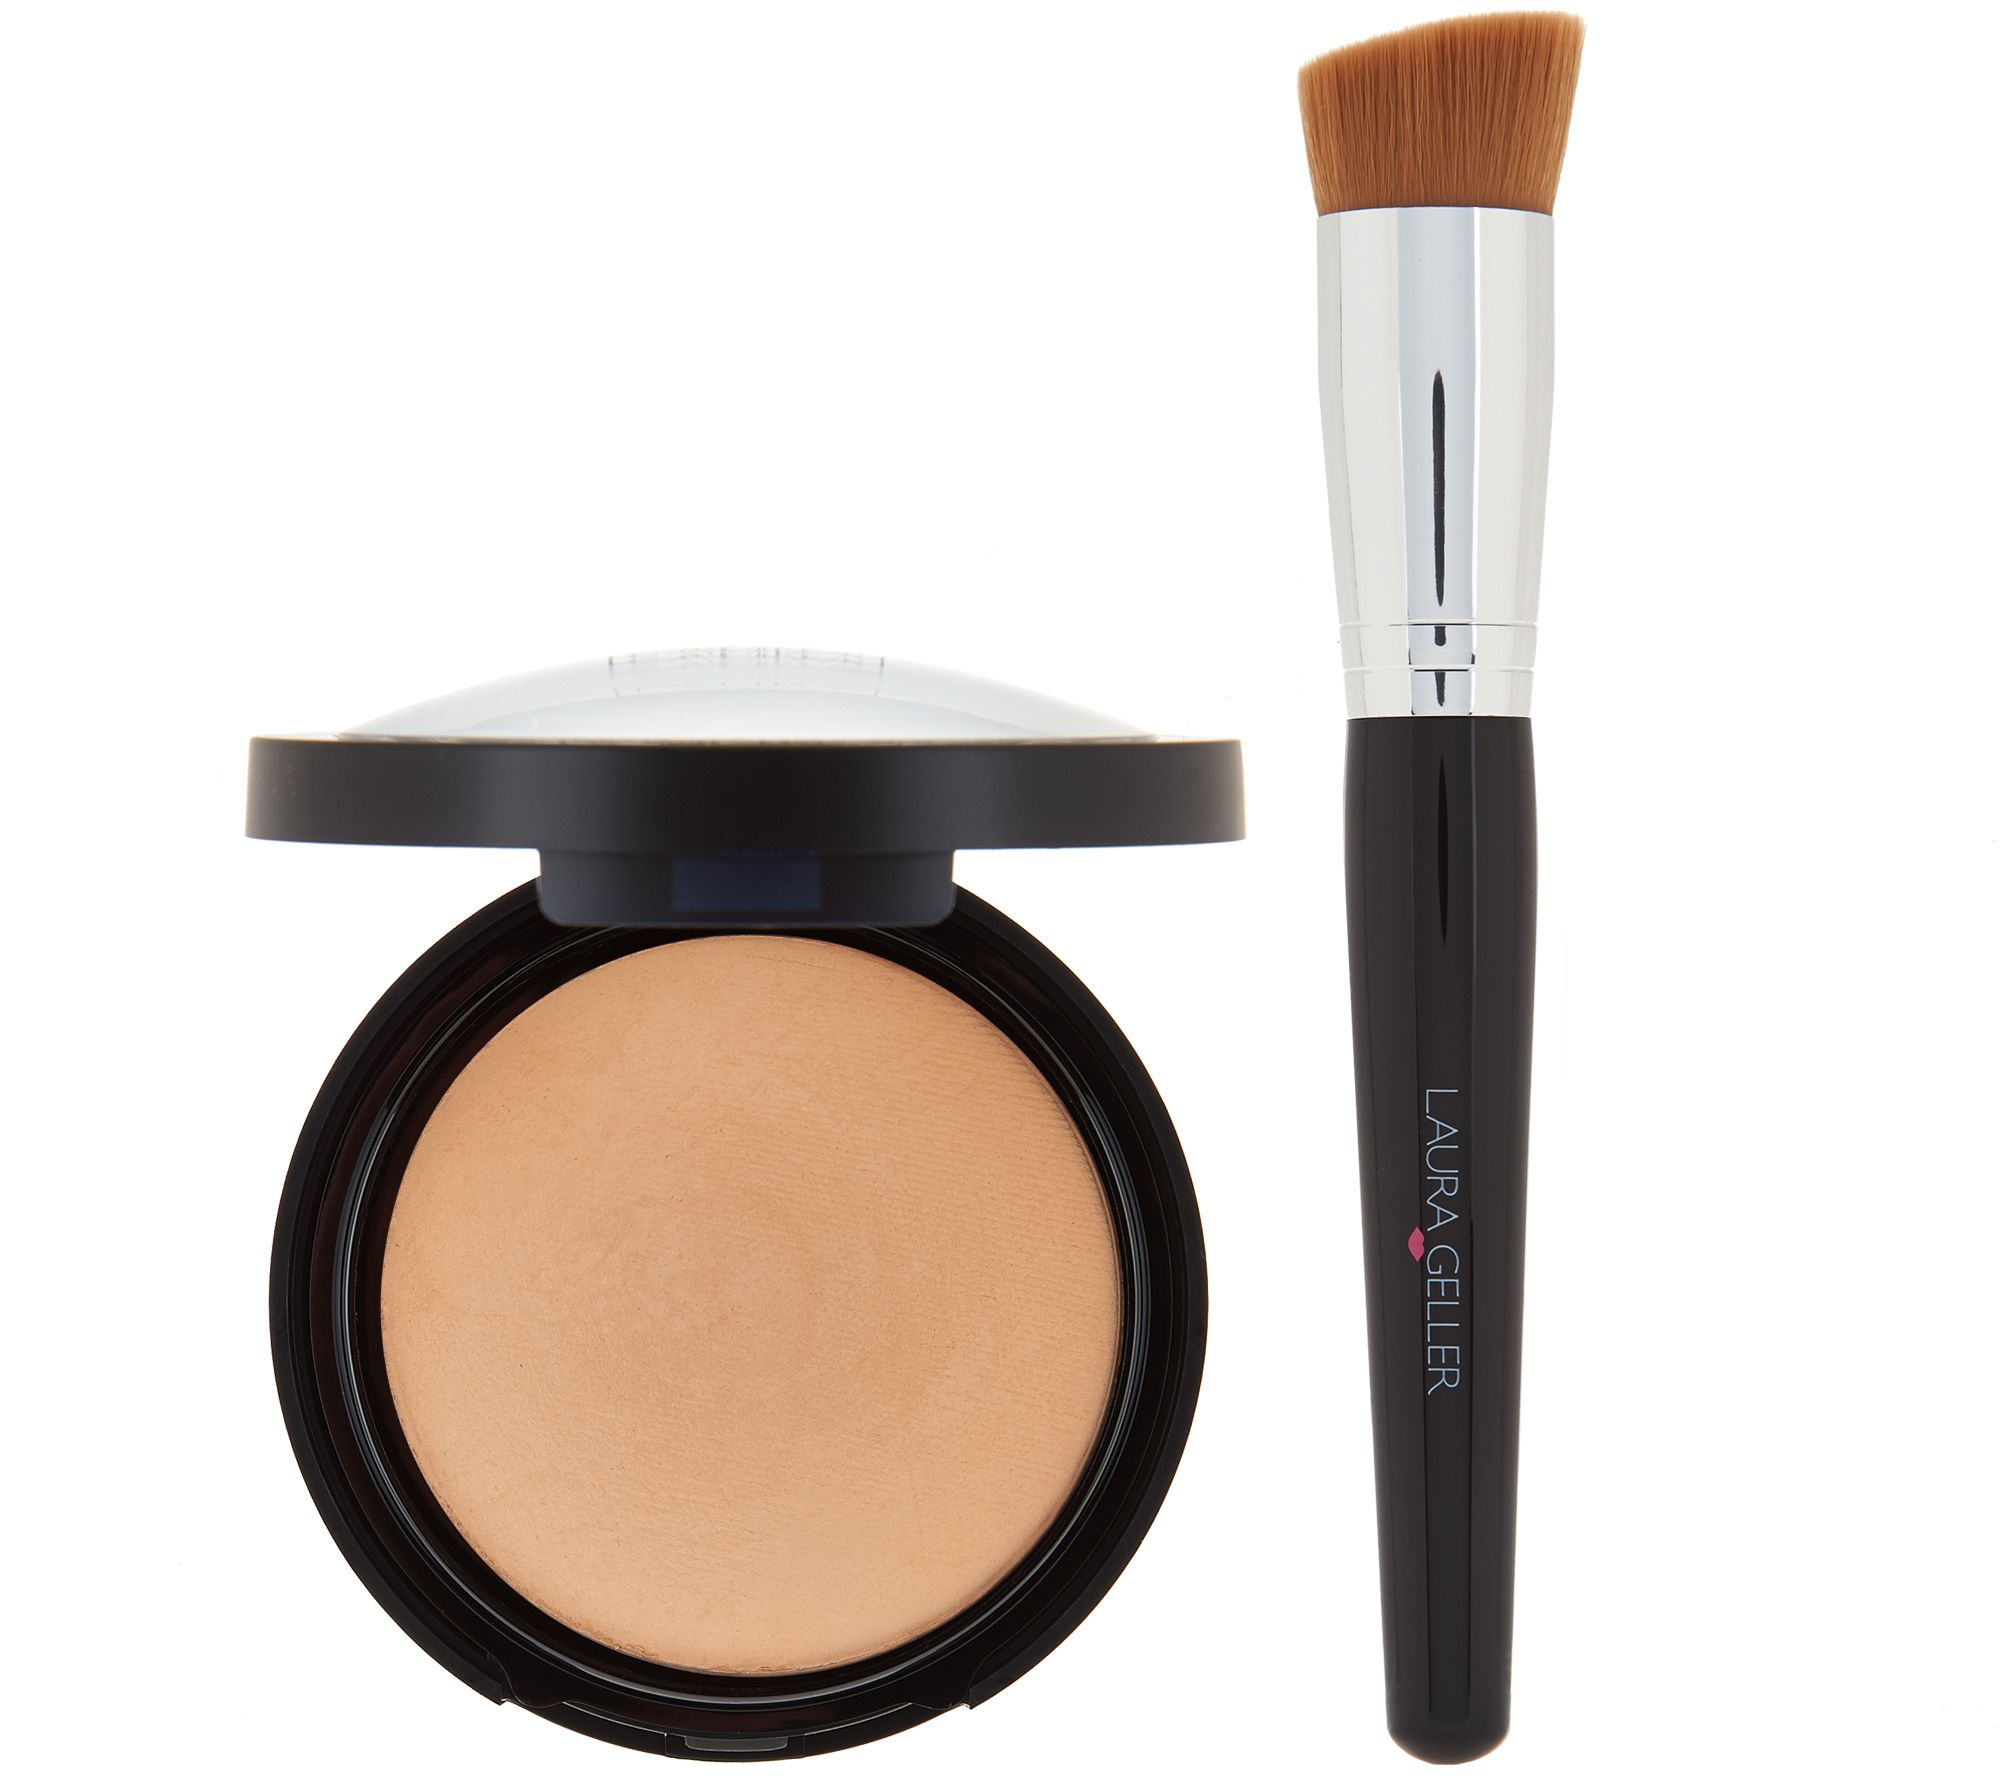 Double Take Baked Foundation with Brush